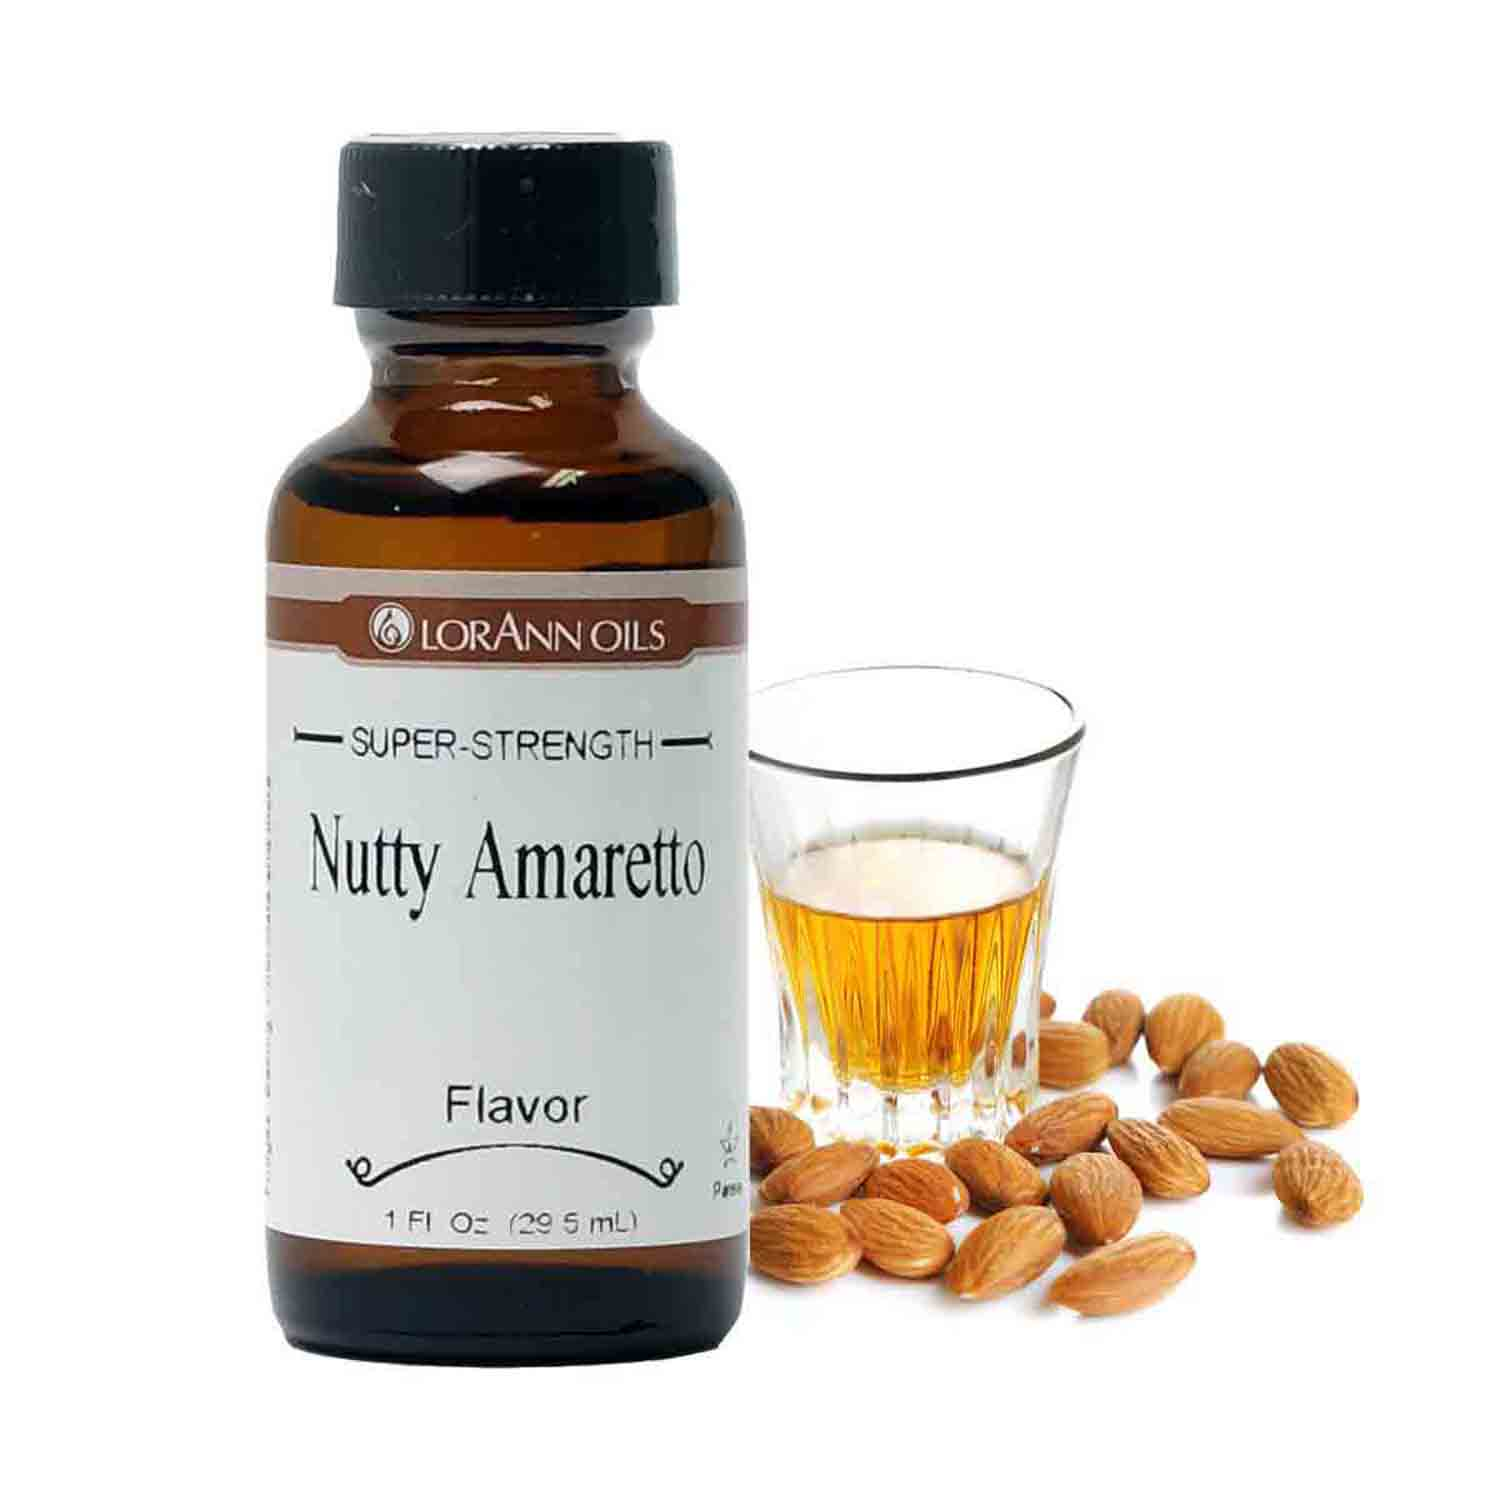 Nutty Amaretto Super-Strength Flavor